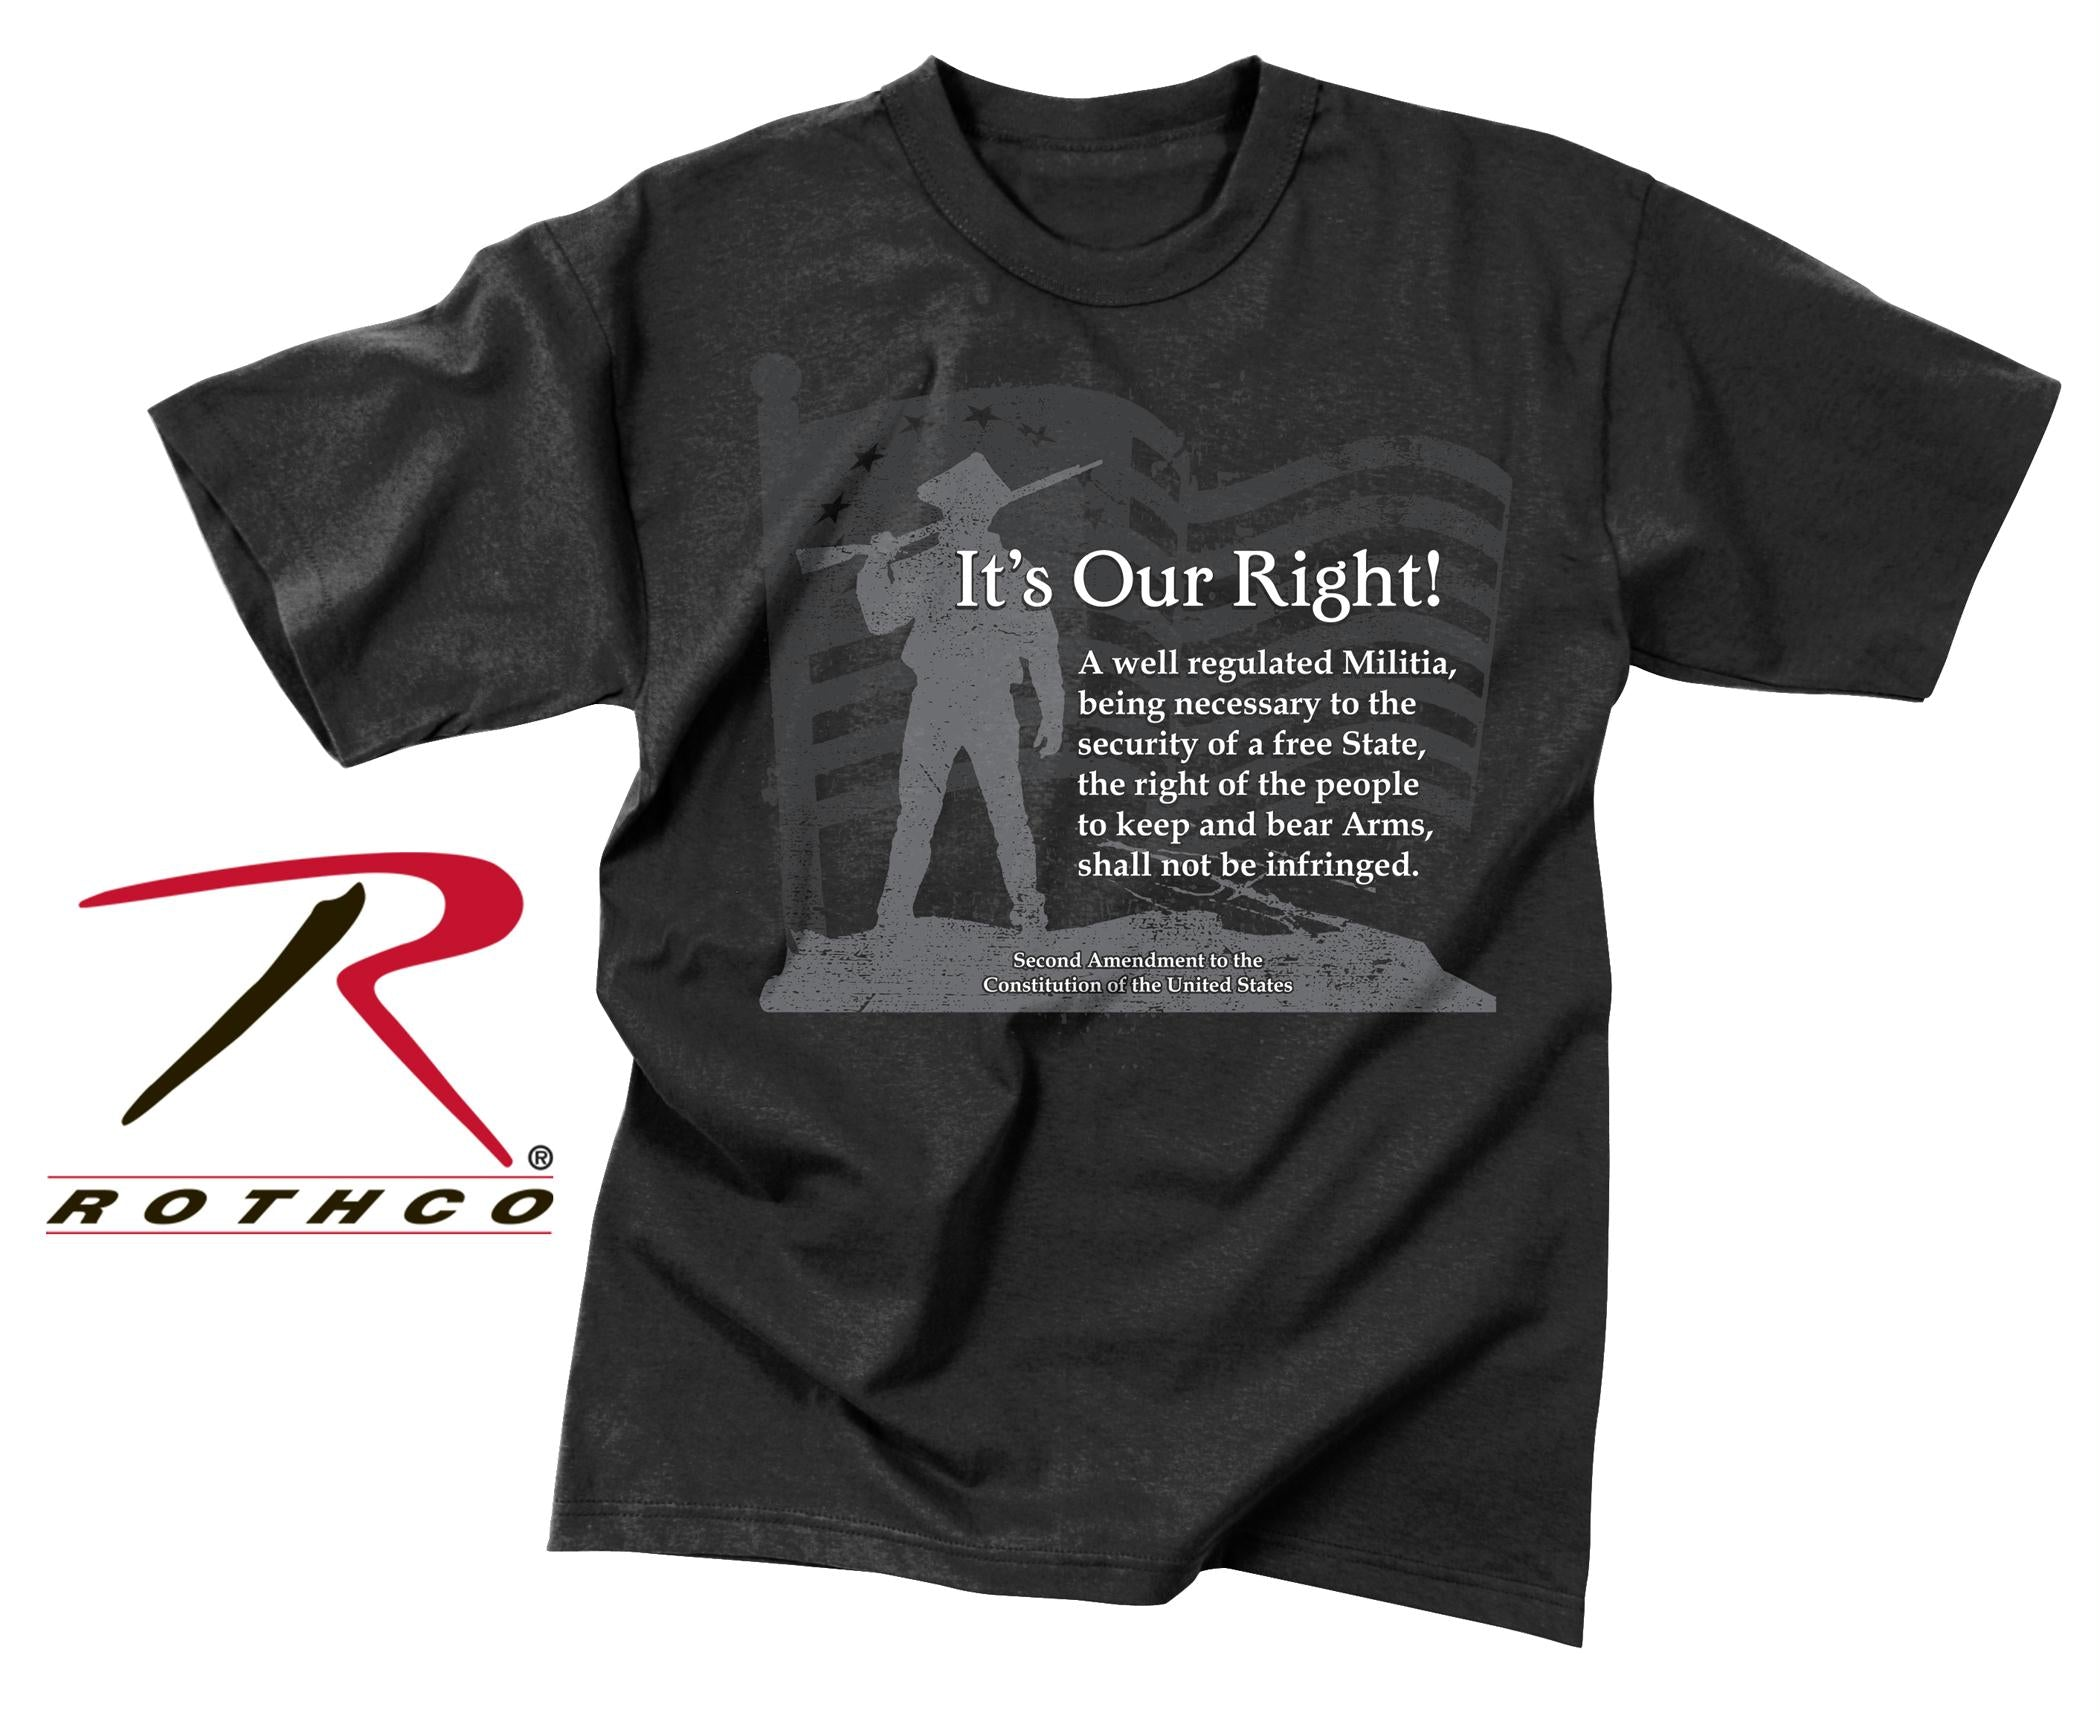 Rothco Vintage ''It's Our Right'' T-Shirt - 3XL